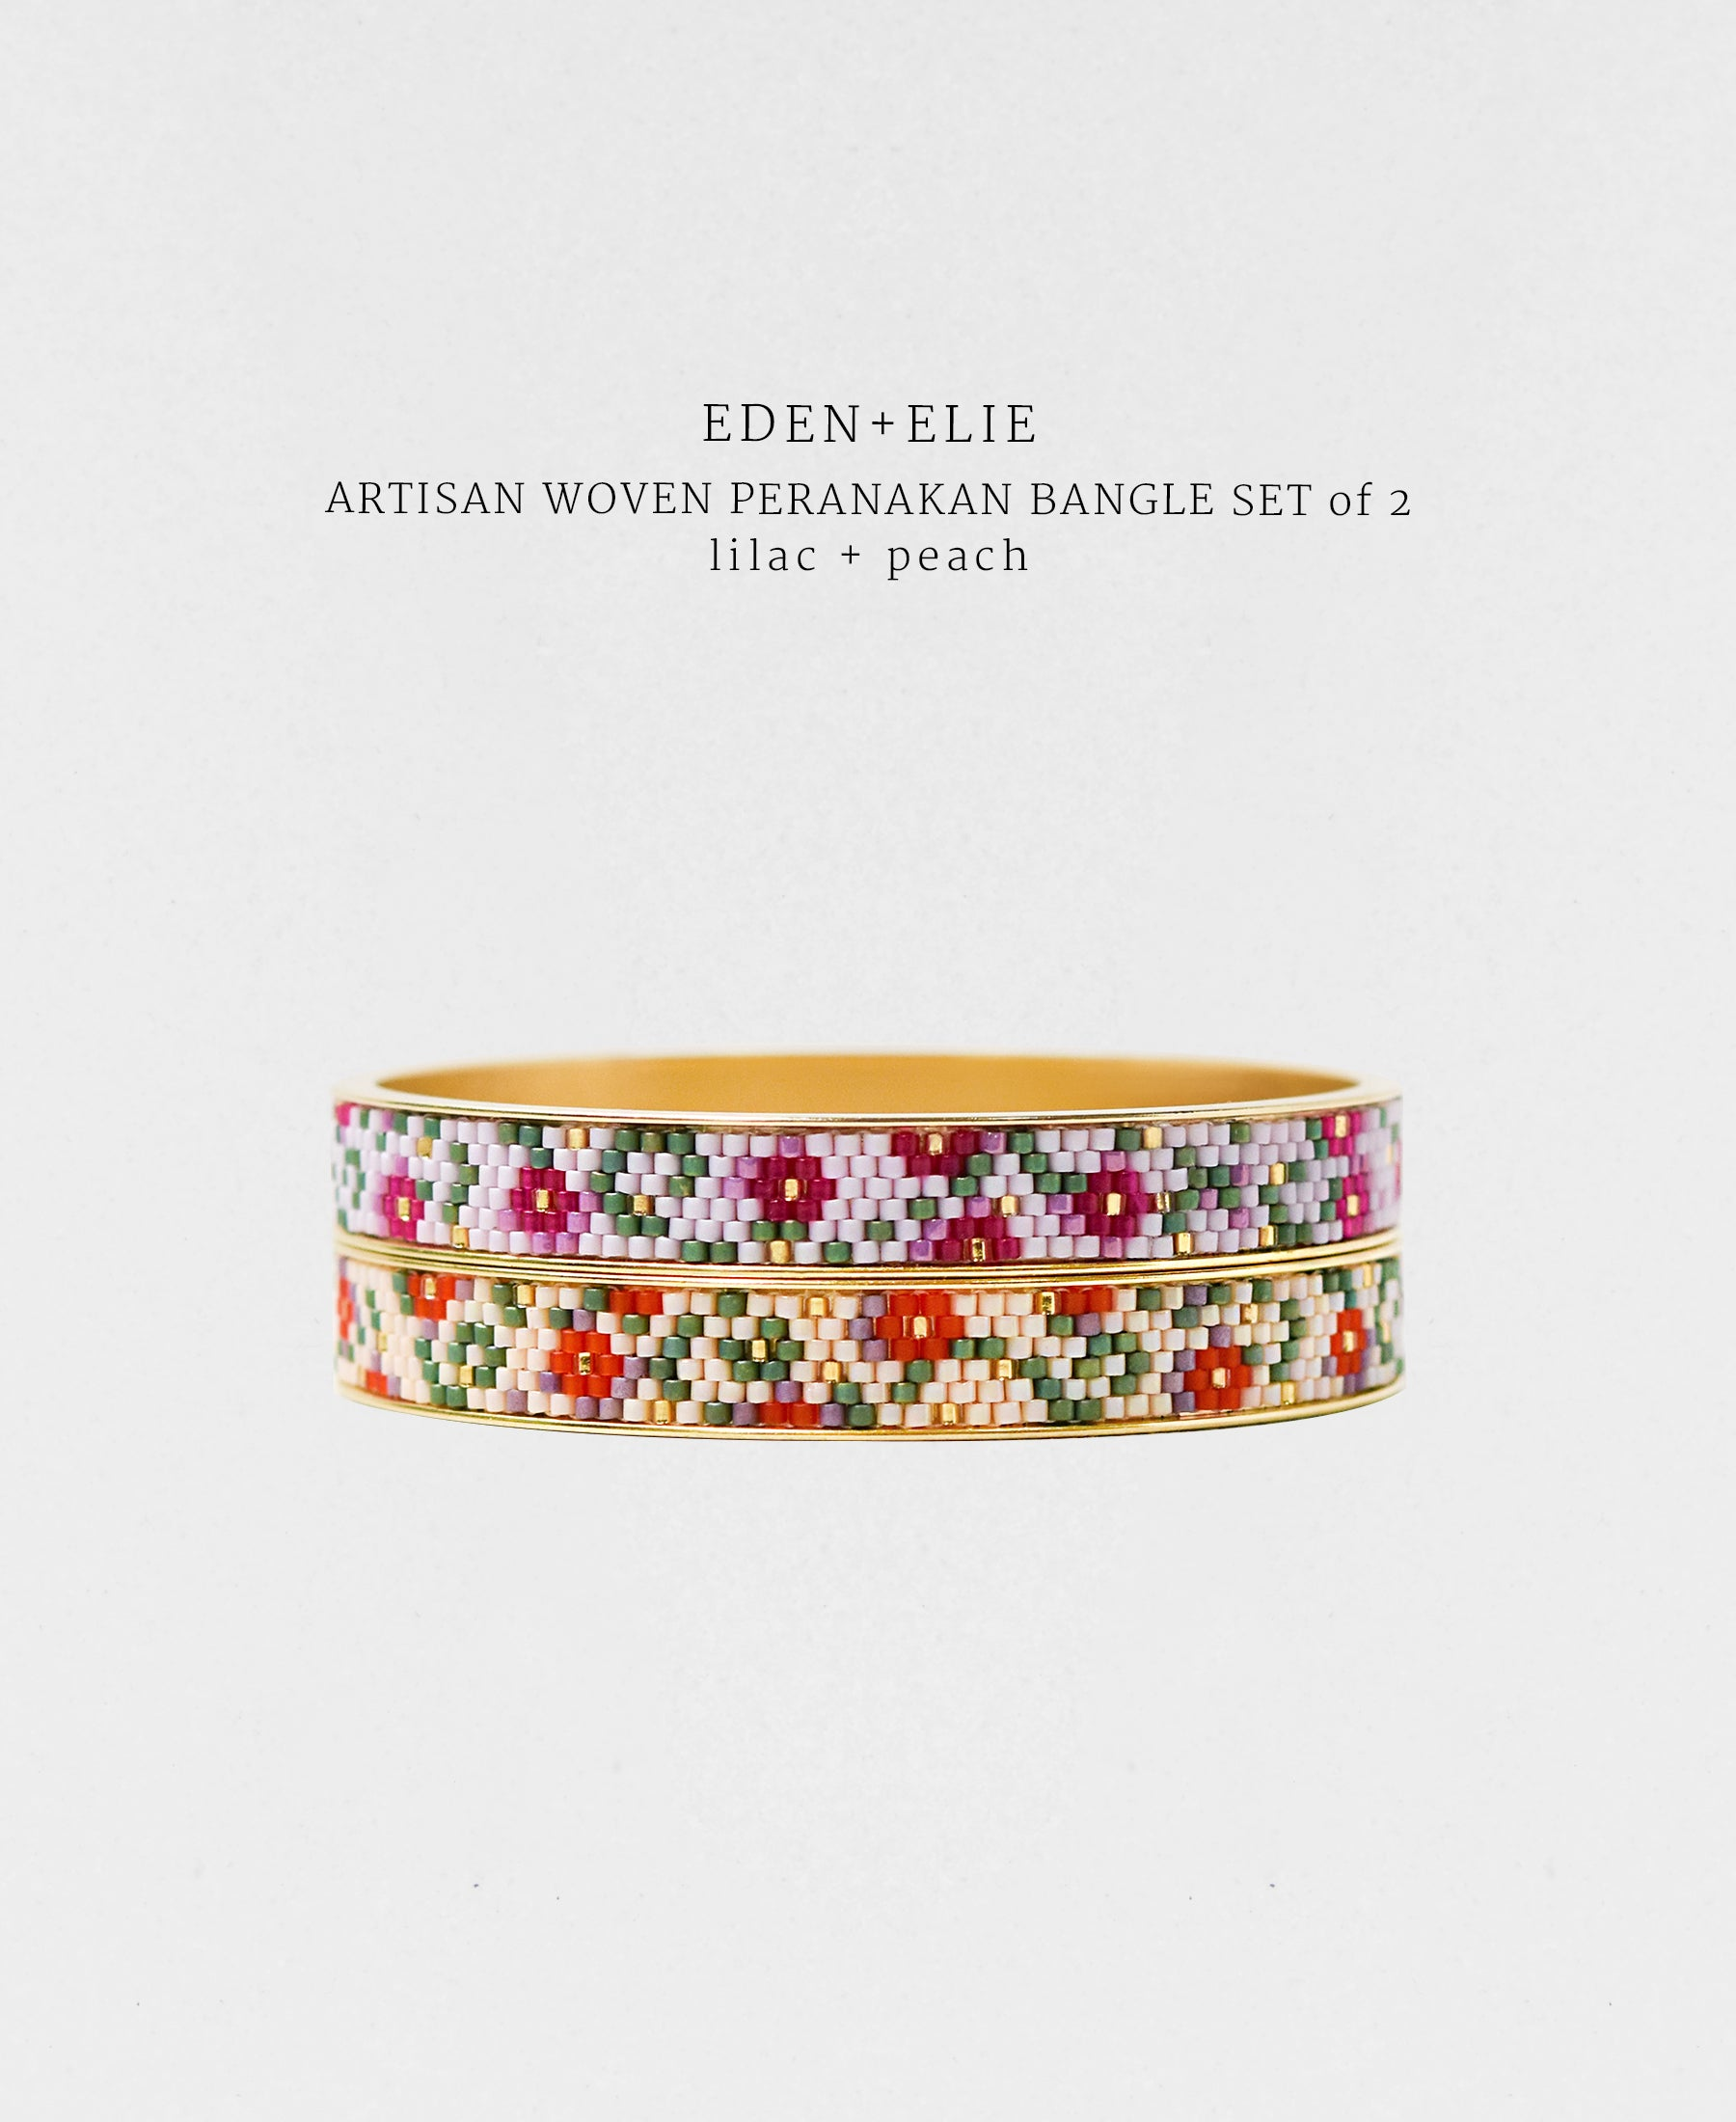 EDEN + ELIE Modern Peranakan gold narrow bangles set of 2 - lilac + peach